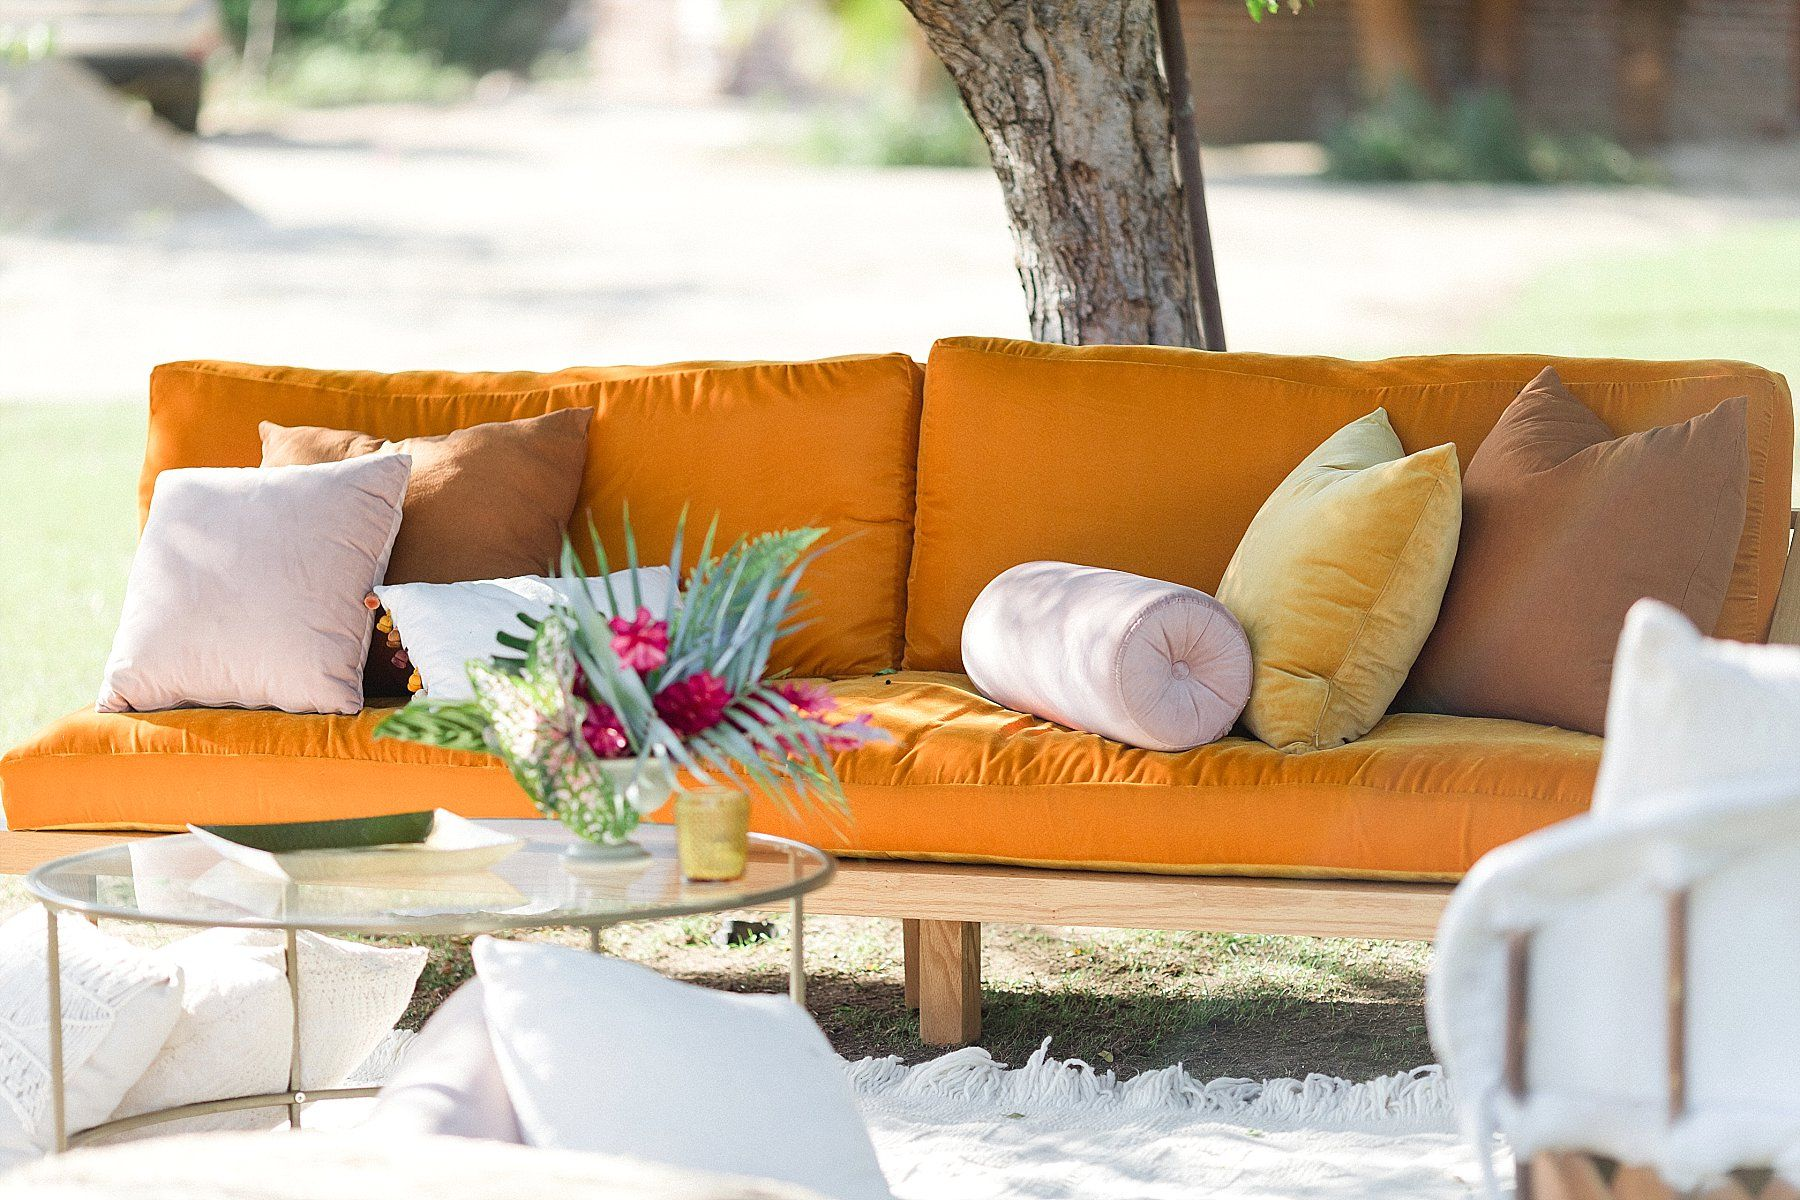 Couch setup at Flora Farms in Cabo San Lucas, Mexico. Destination Wedding Planning by Cabo Wedding Services. Photography by Sara Richardson